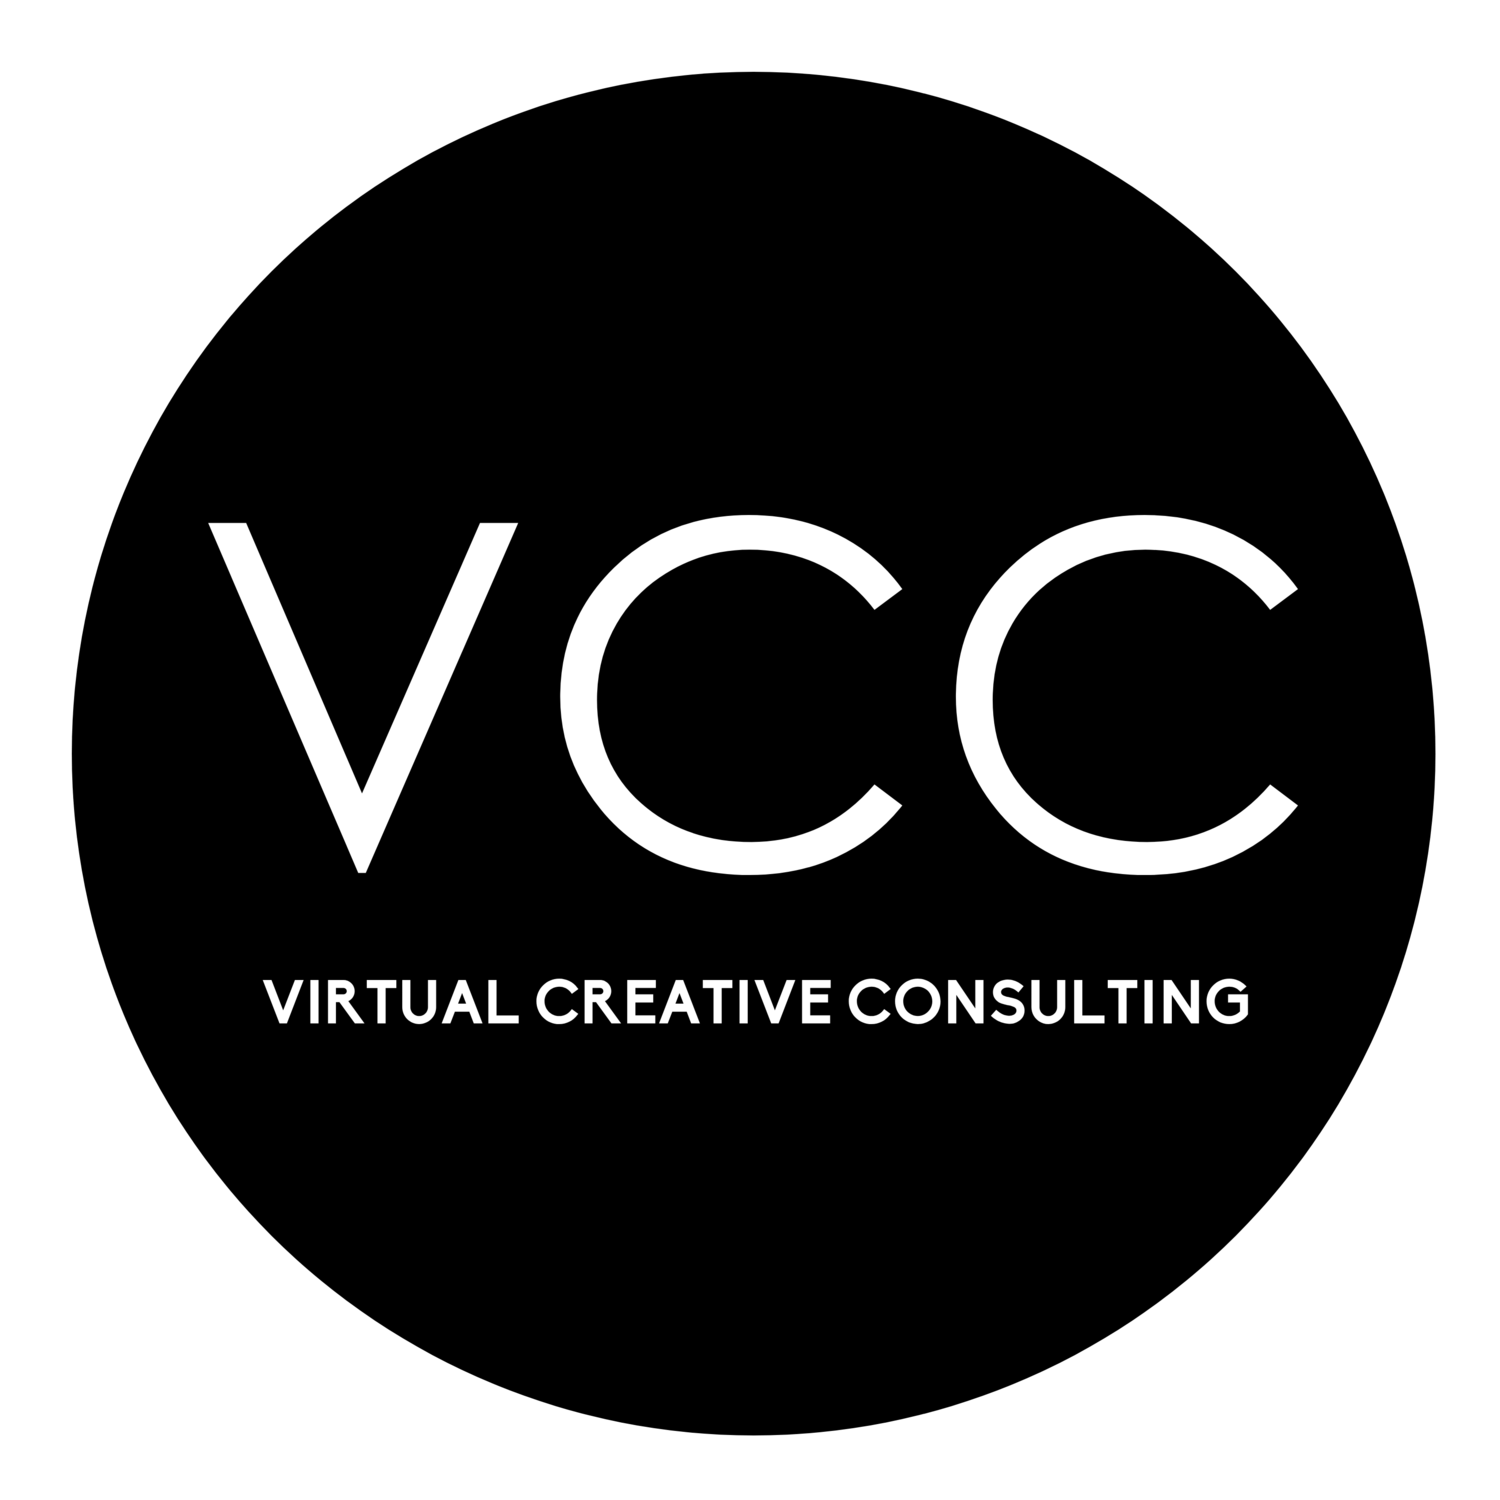 Virtual Creative Consulting